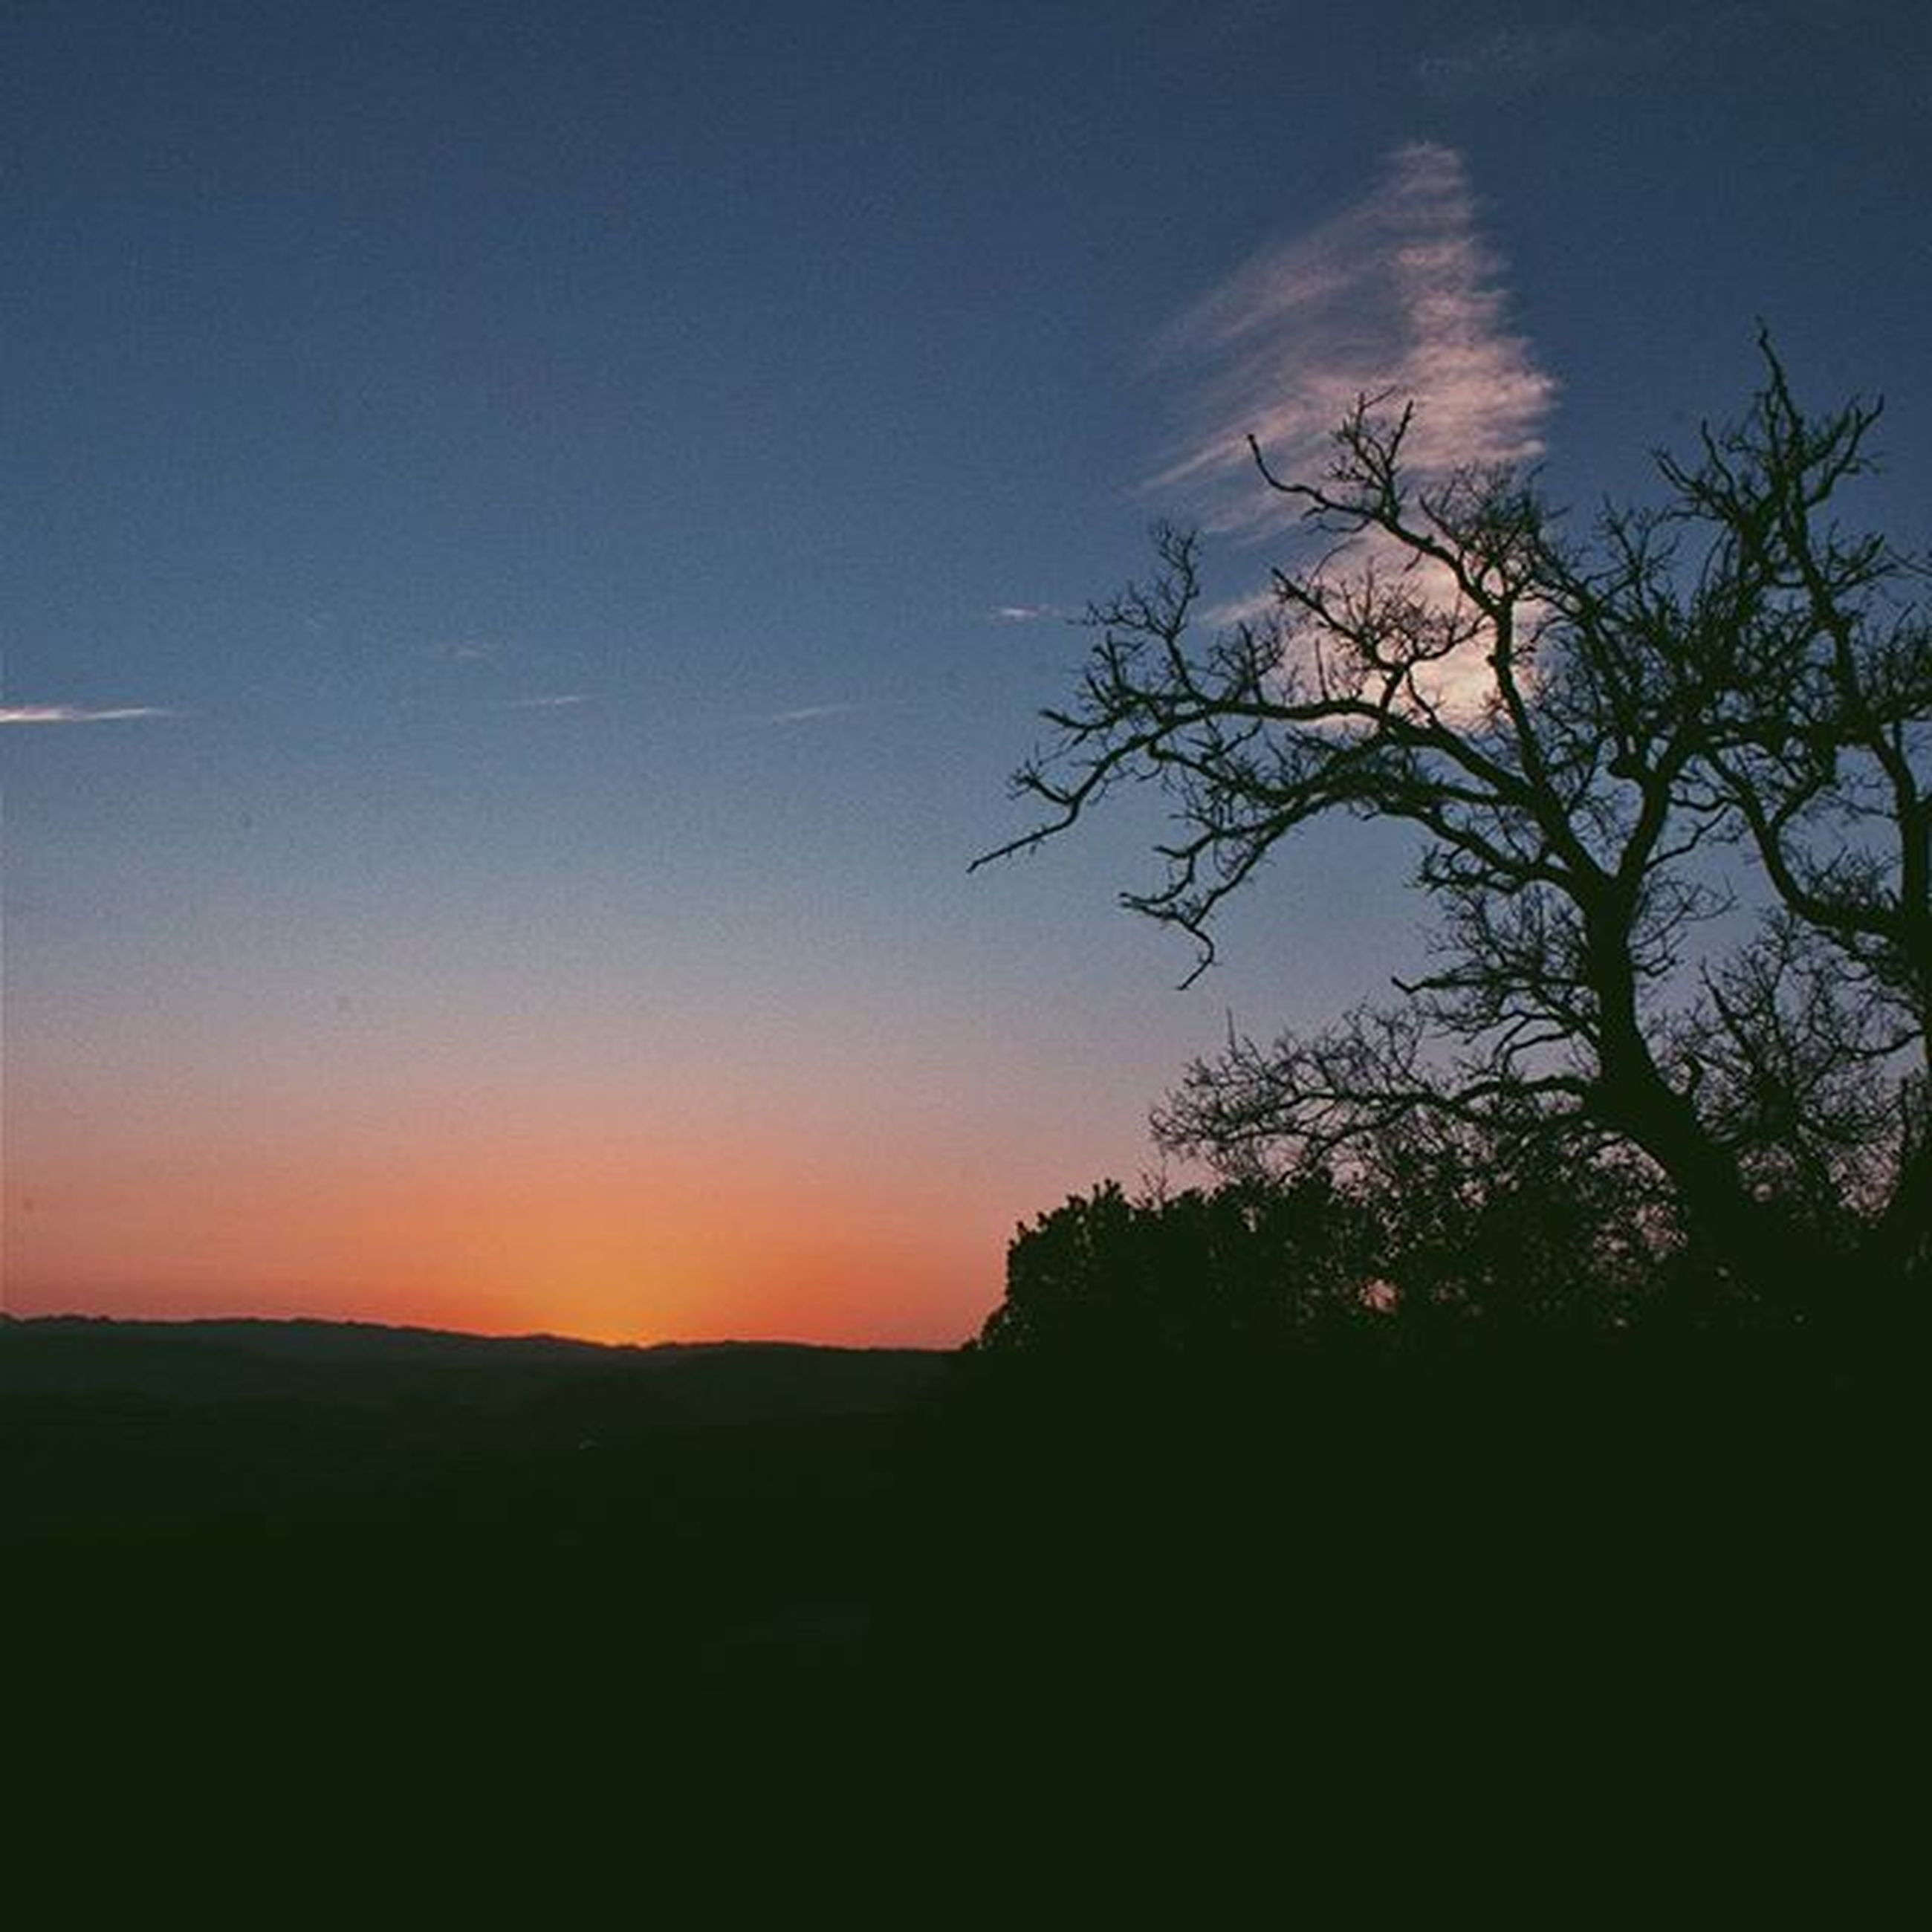 silhouette, sunset, tranquil scene, tranquility, scenics, landscape, beauty in nature, tree, copy space, sky, nature, field, idyllic, dark, clear sky, dusk, outline, blue, horizon over land, outdoors